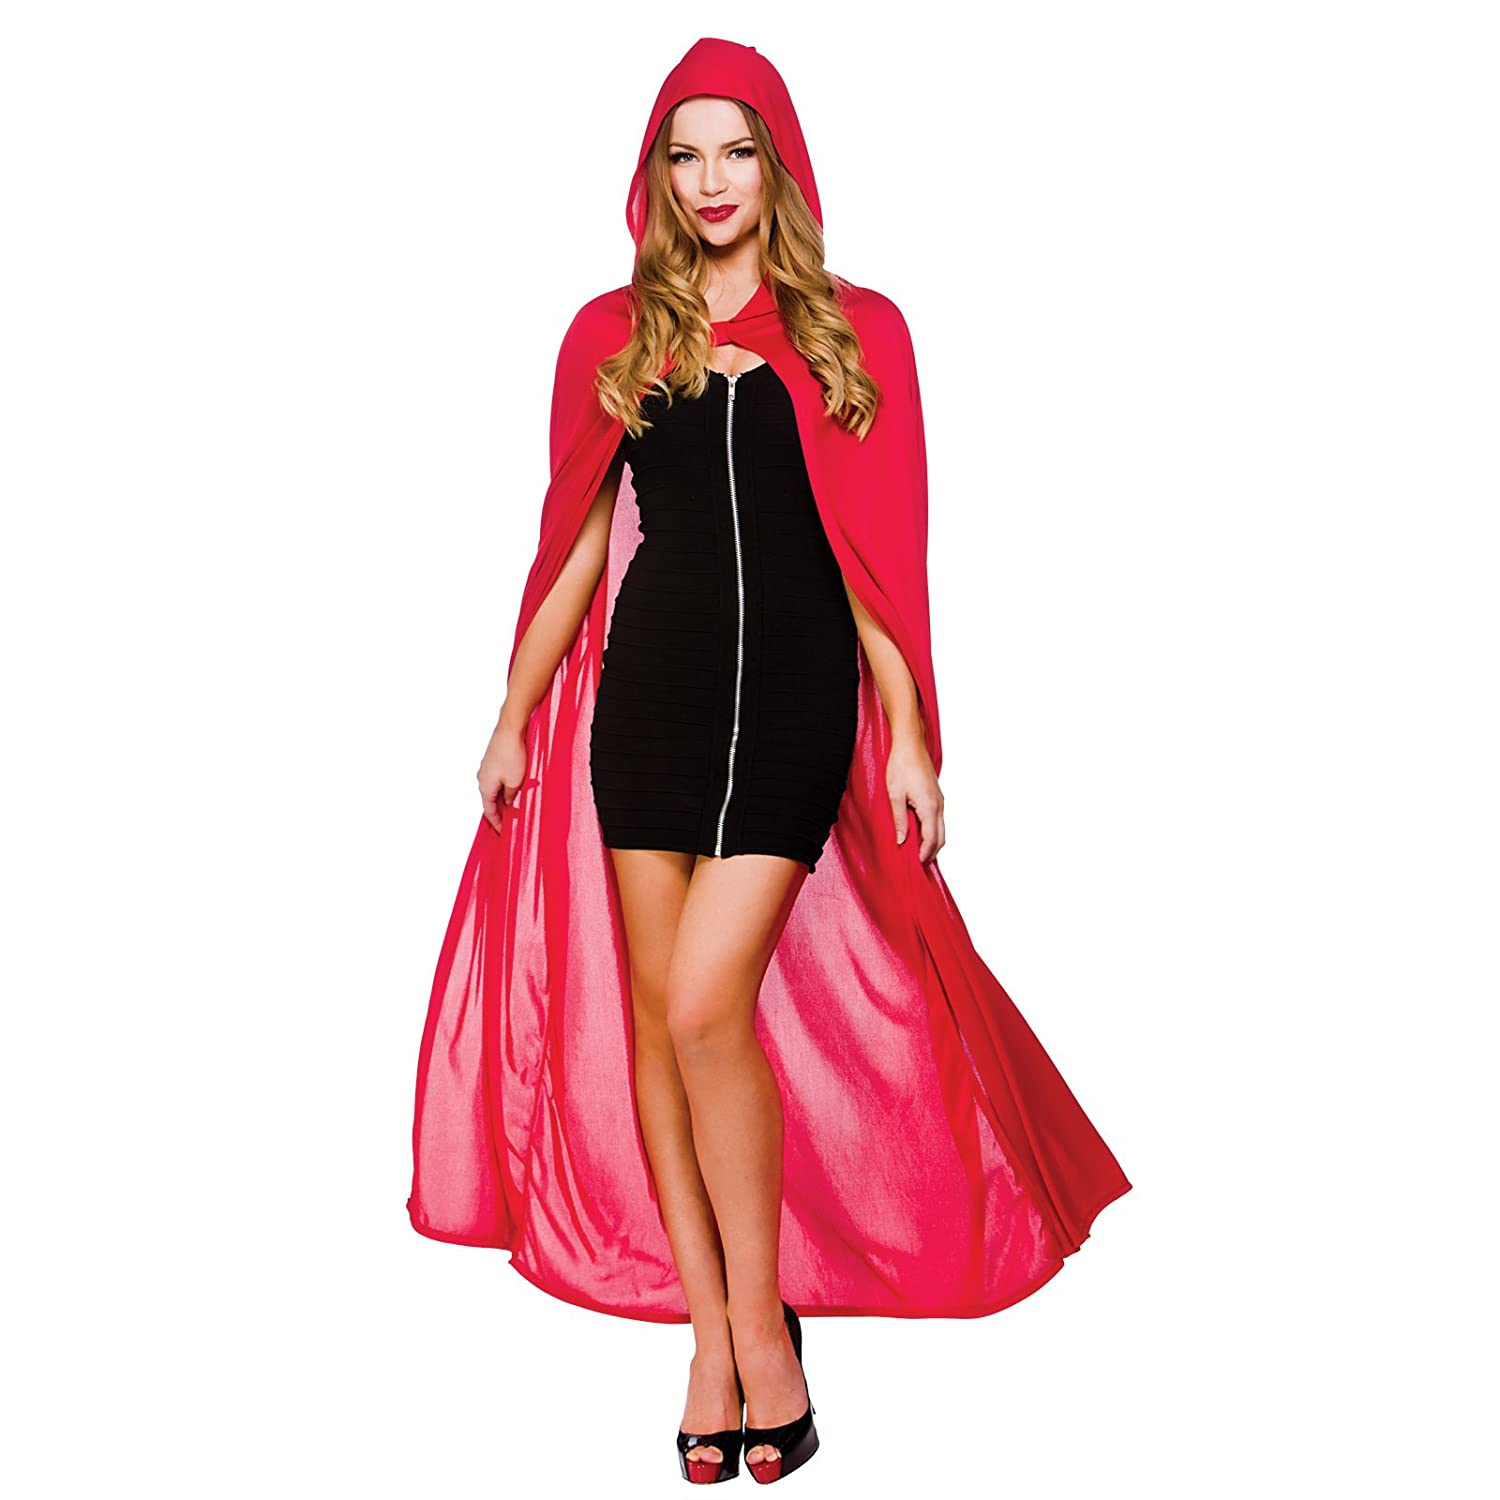 Cape w hood red 52 132cm womens vampire costumes for adult cape w hood red 52 132cm womens vampire costumes for adult ladies dracula halloween trick treat party fancy dress up outfits amazon clothing solutioingenieria Image collections